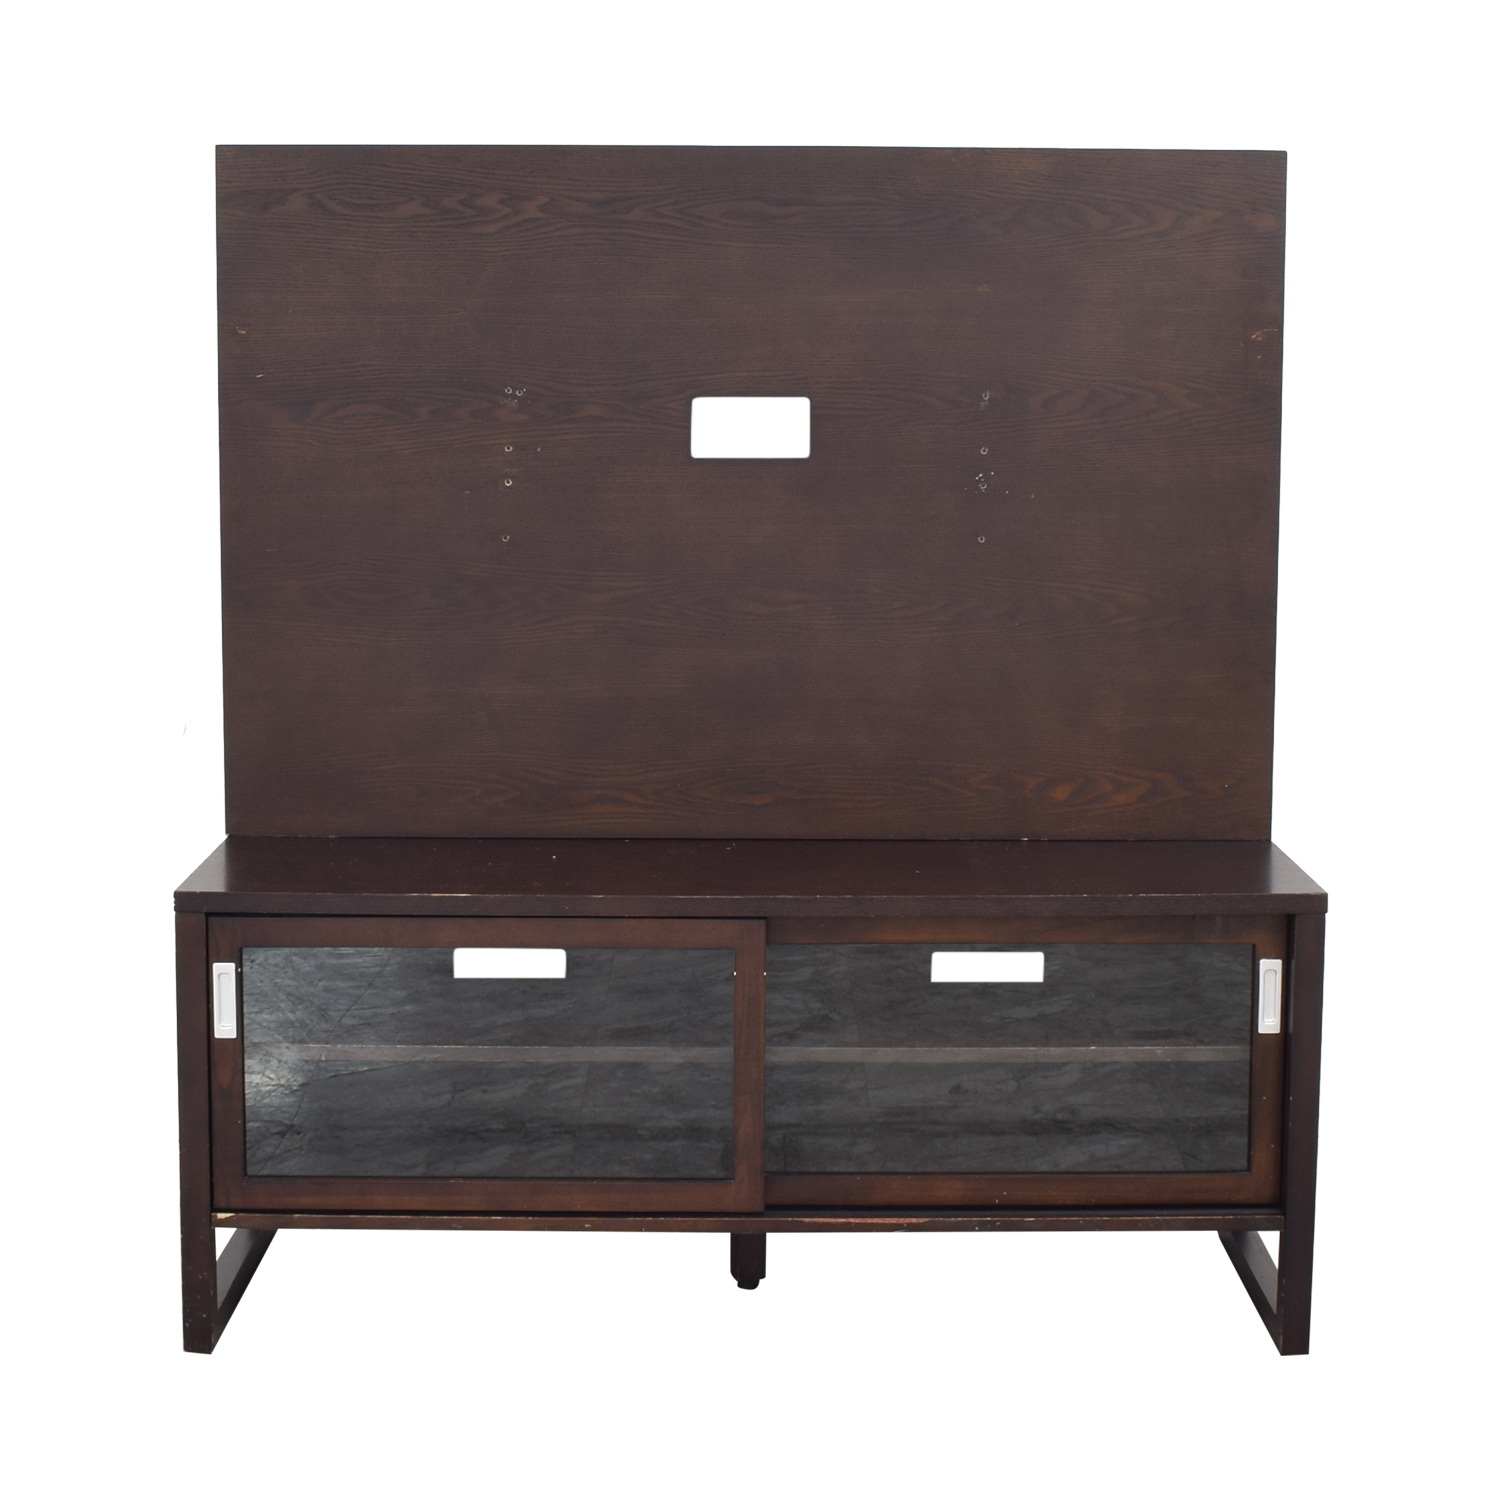 Crate & Barrel Crate & Barrel Entertainment Console with Back Panel ct